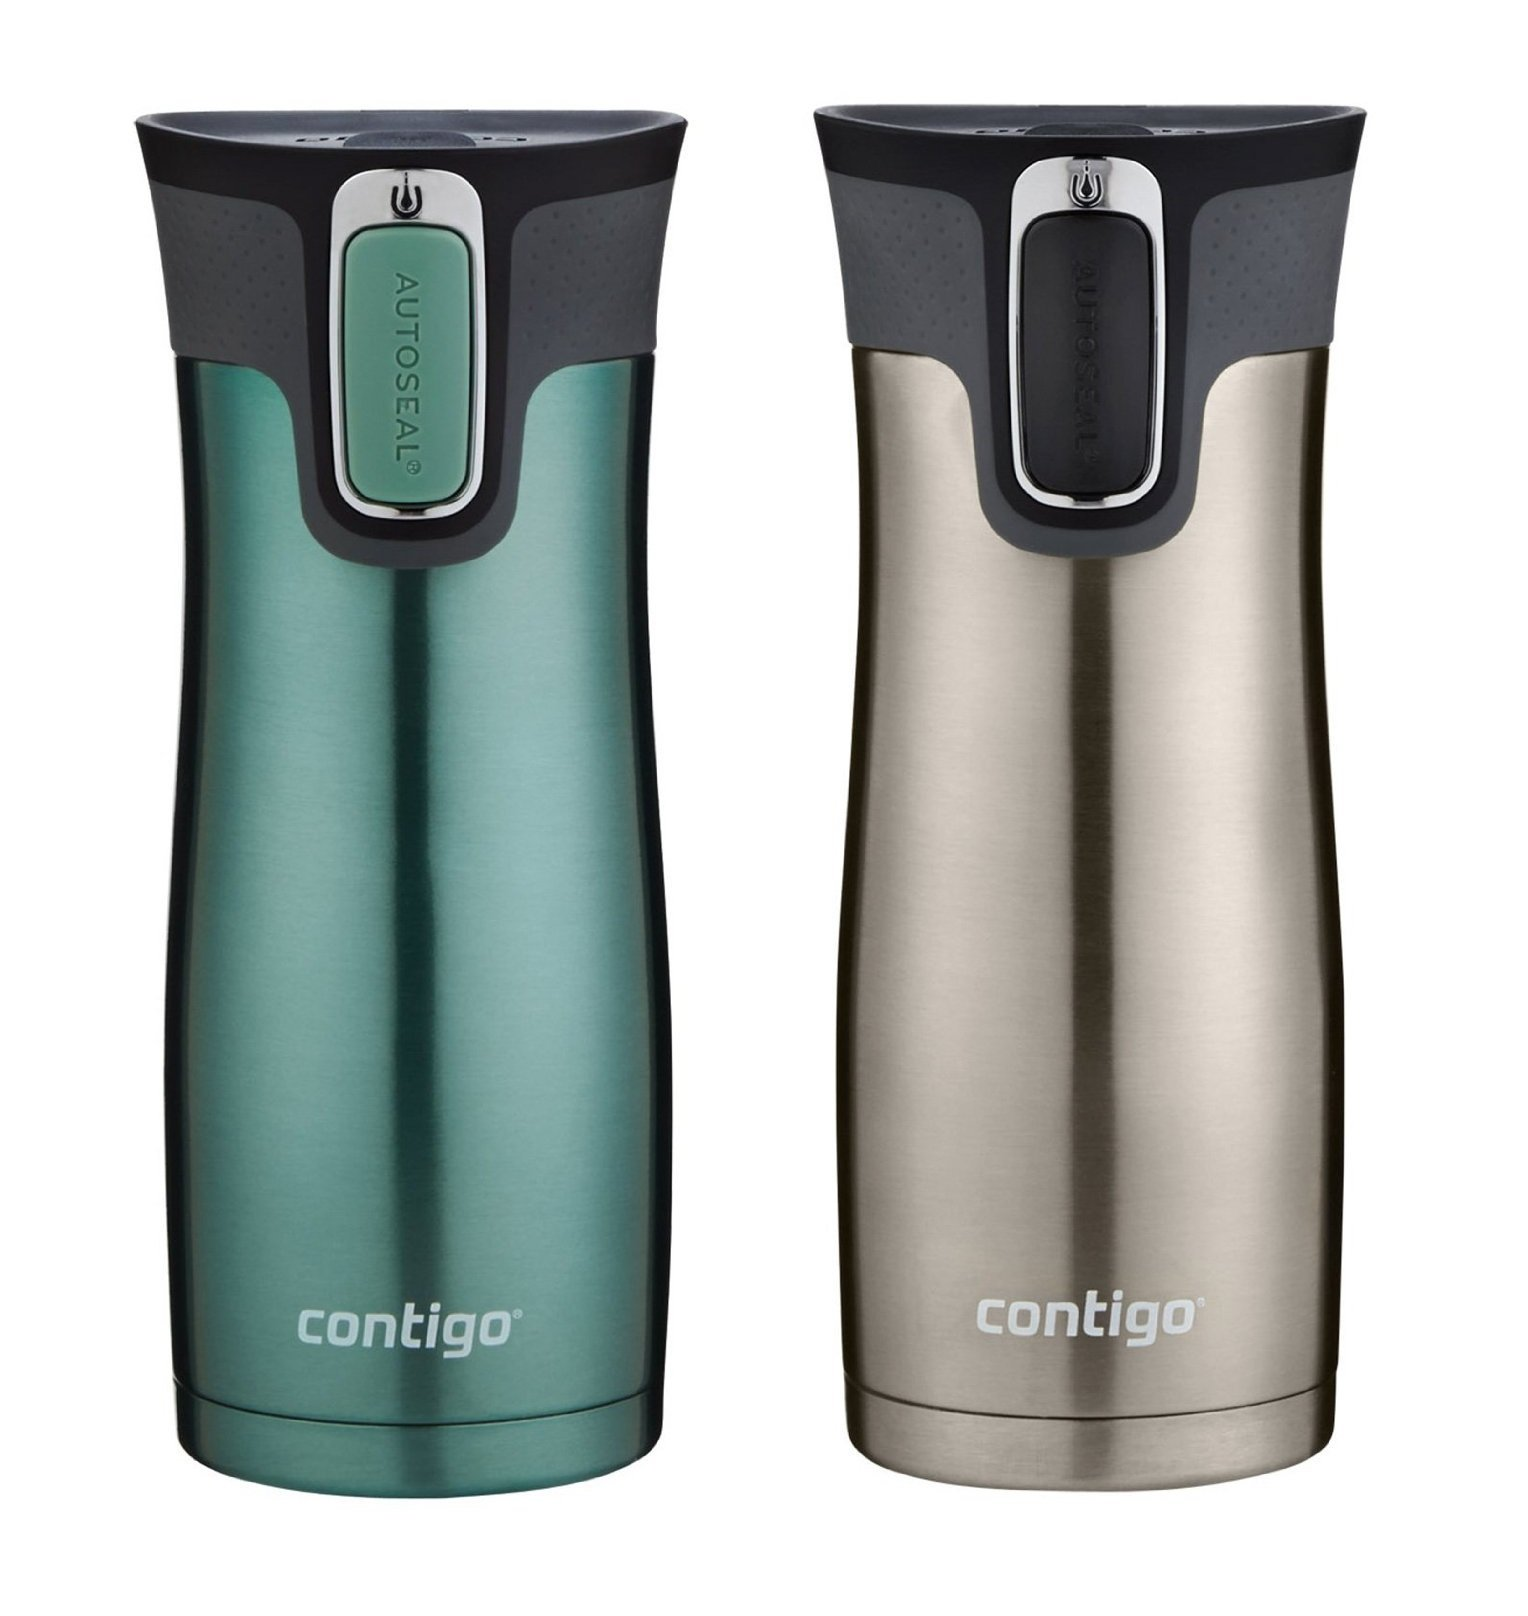 Contigo AUTOSEAL Travel Mug - Stainless Steel Vacuum Insulated Tumbler - 2 Pack (Green/Stainless Steel)